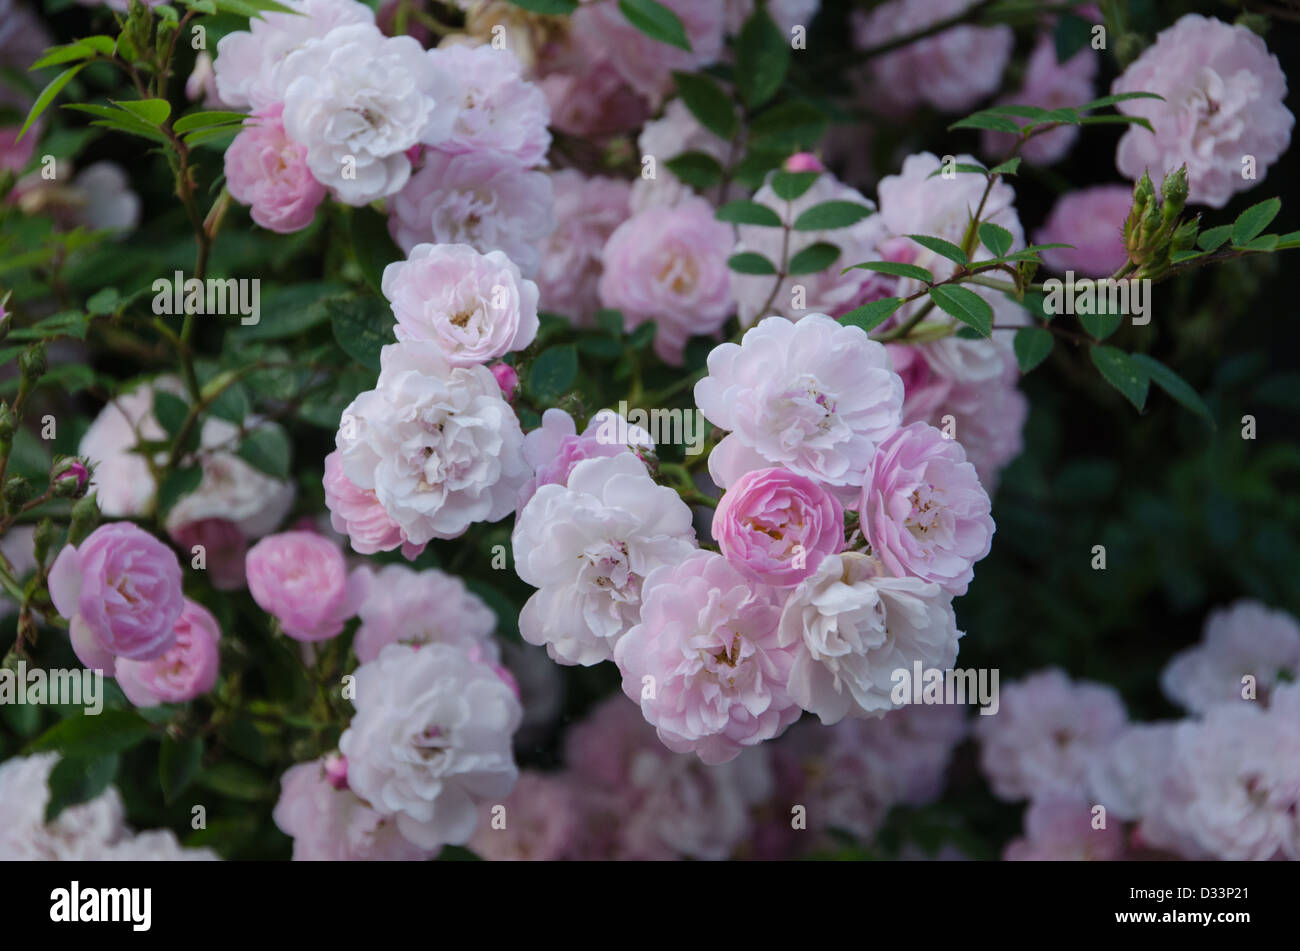 Climbing patio rose 'Little Rambler' - Stock Image